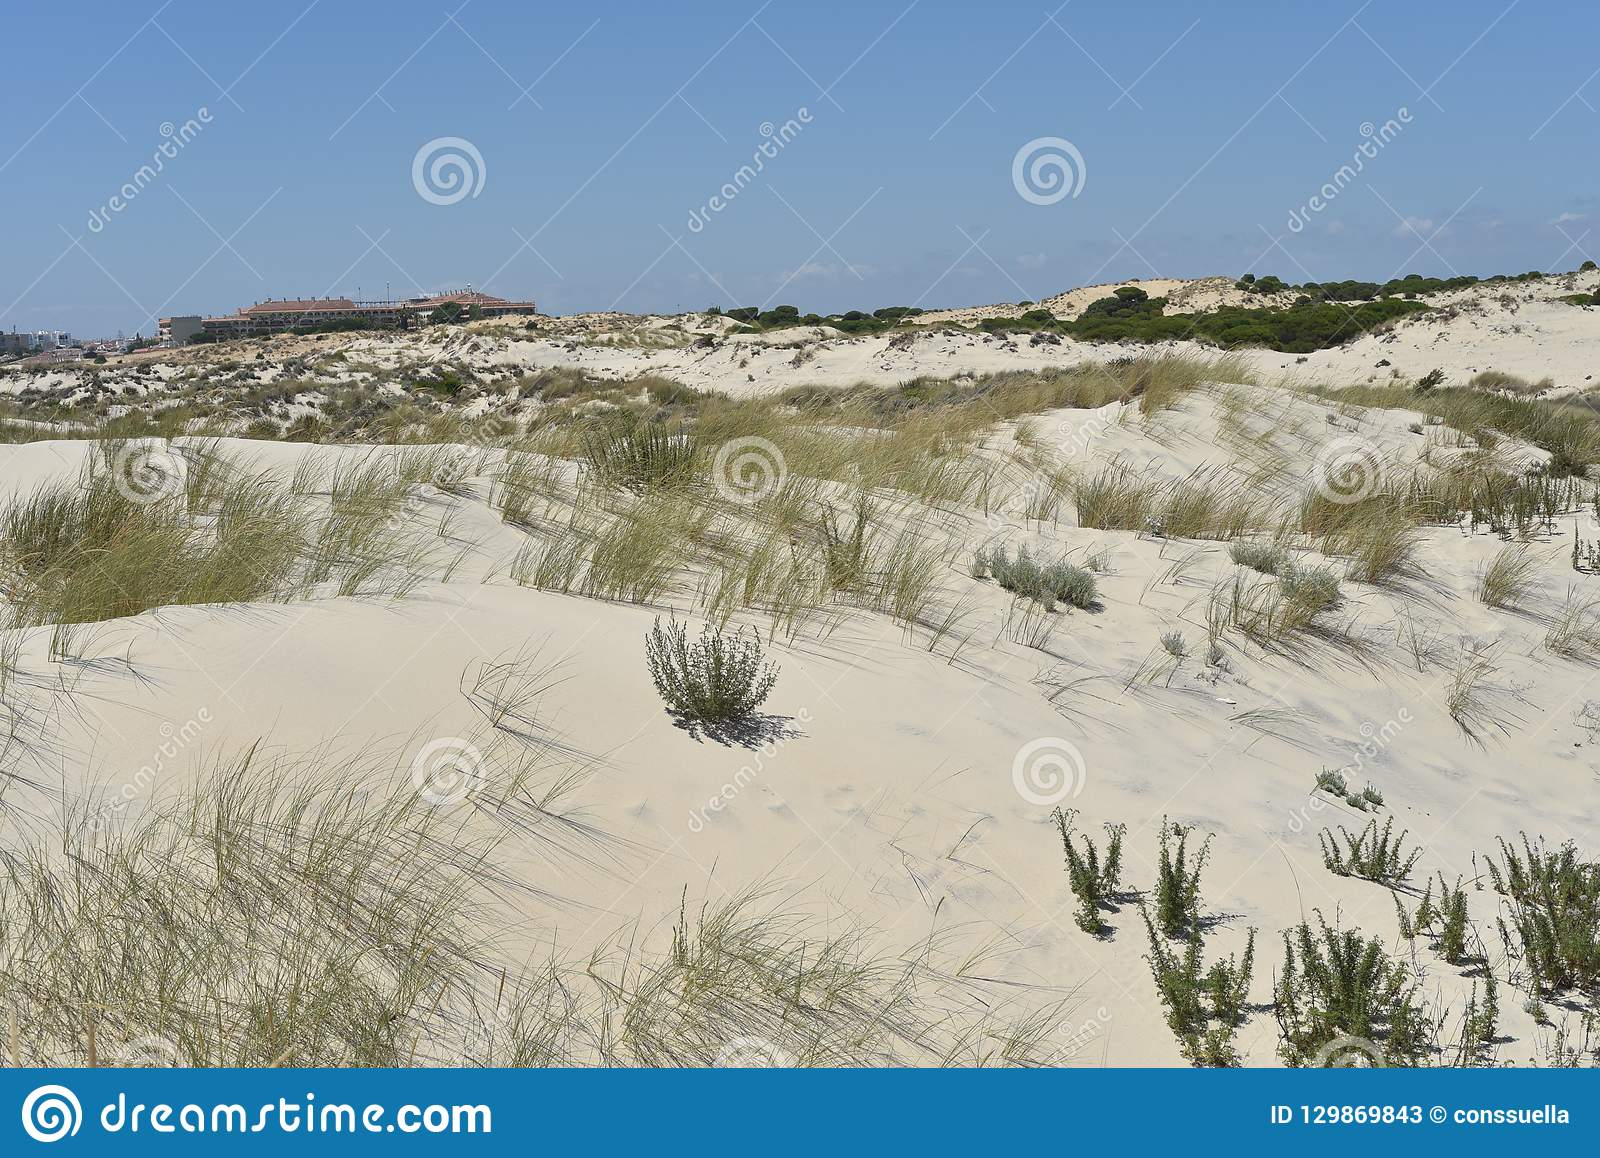 Donana National Park in Andalusia, Spain